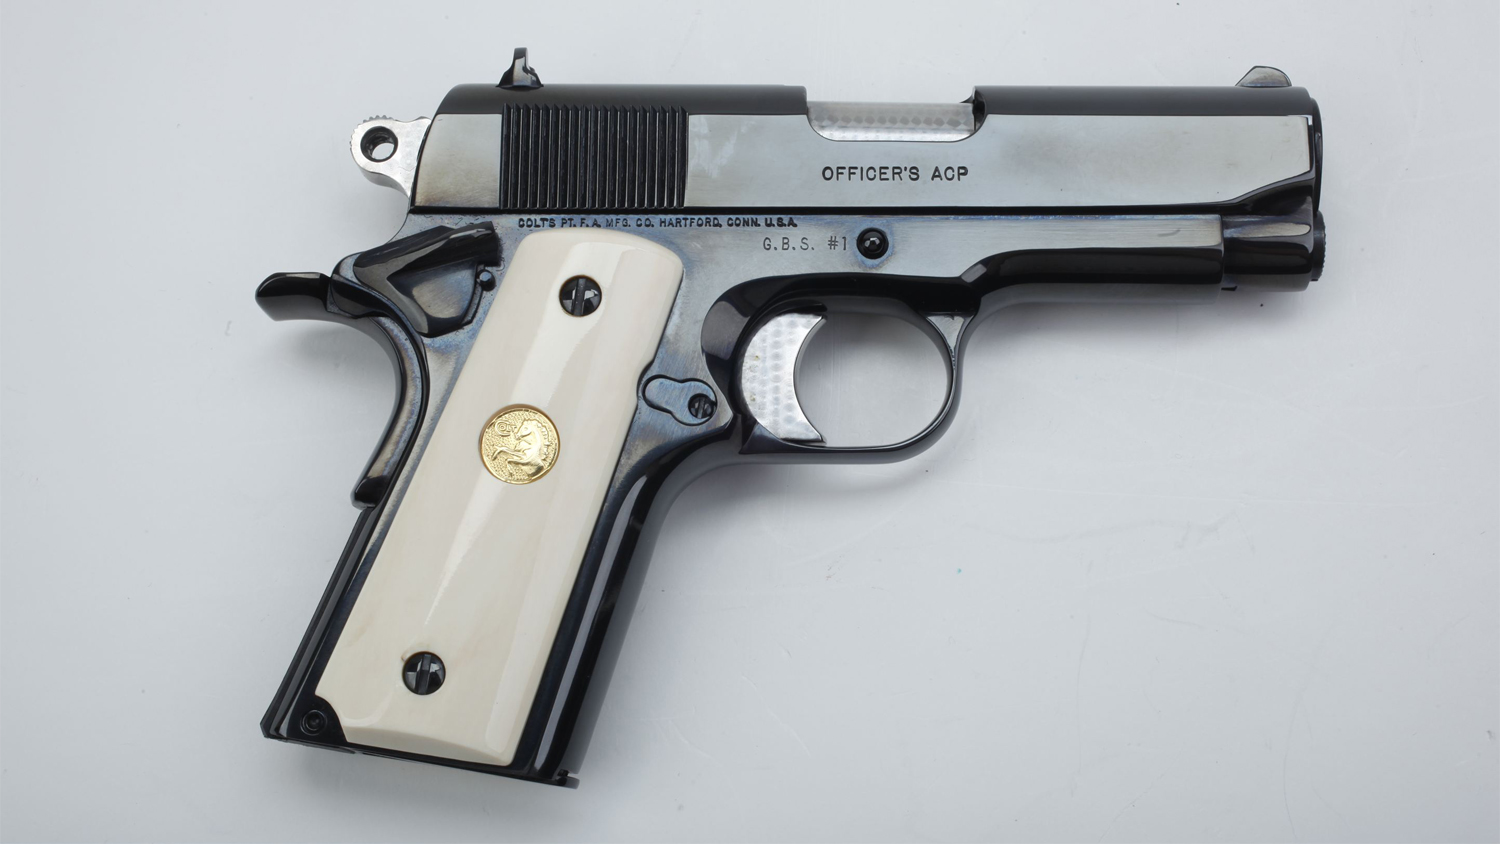 Gun of the Day: Colt Officer's Pistol